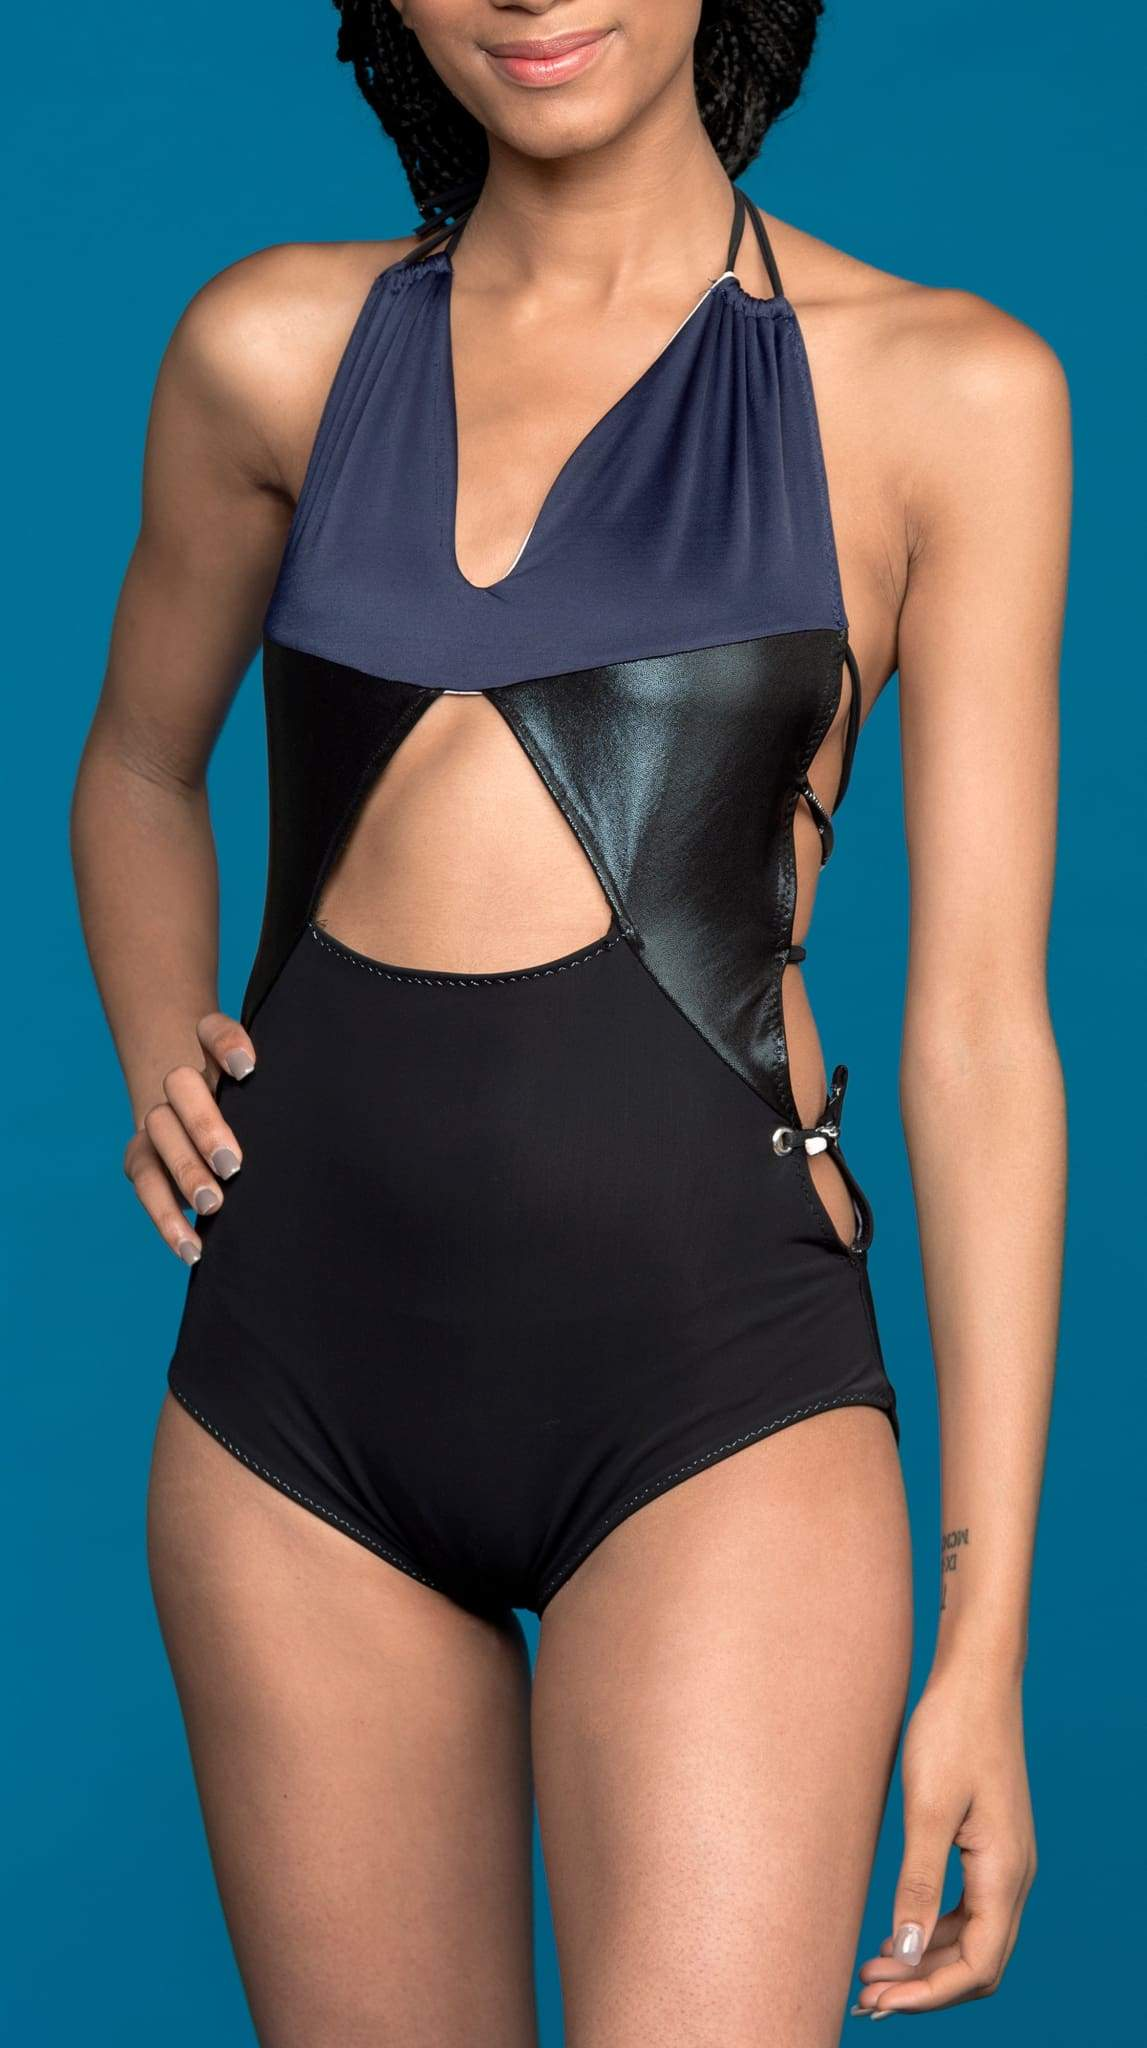 Black One Piece Recycled fabric Onyx Swim Suit by Rosina Mae Nineteenth Amendment